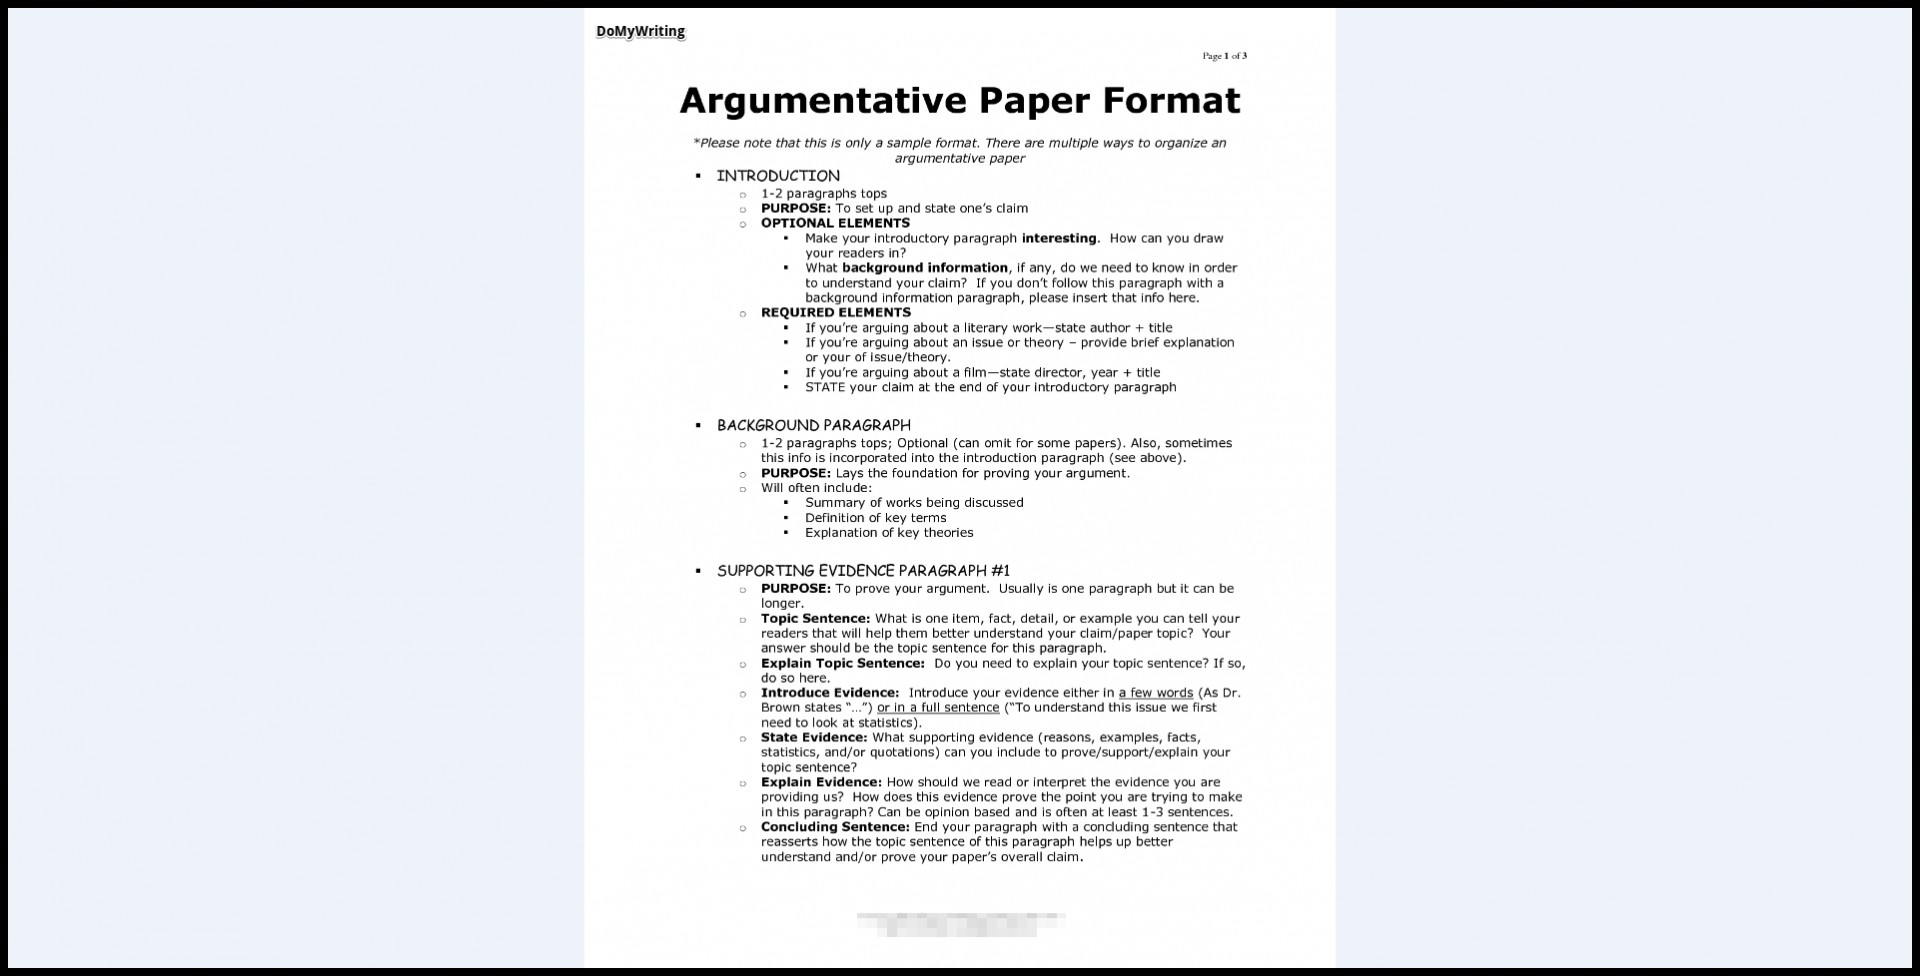 008 Essay Example Argumentative Best Format Ap Lang Outline Template College 1920